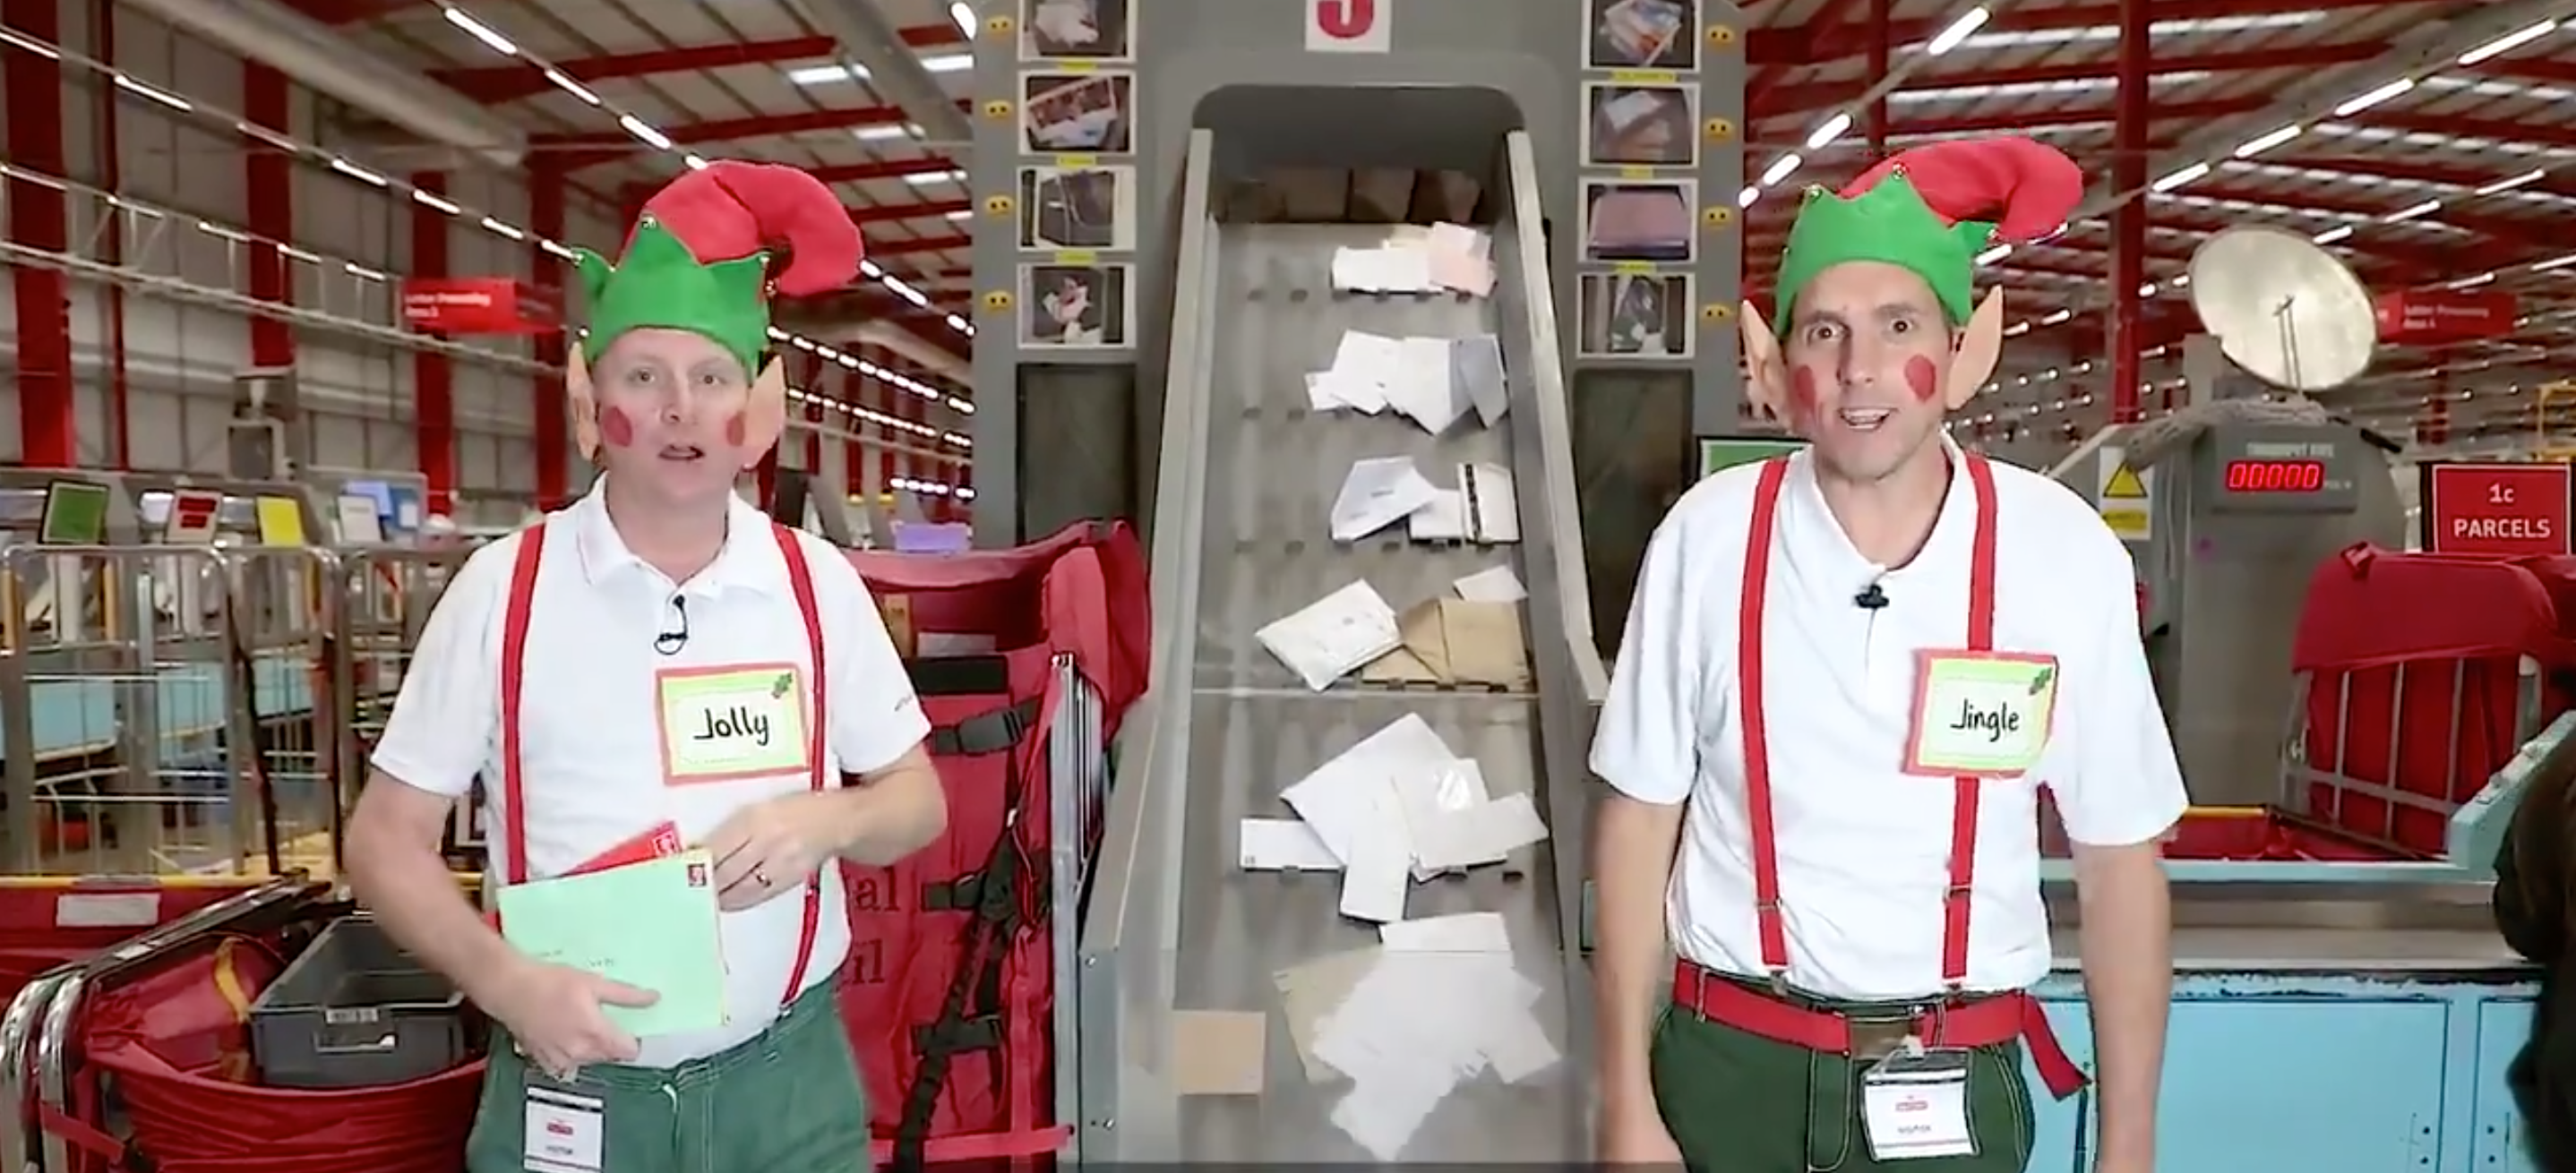 Above: Royal Mail's Christmas elves at work in the sorting office.